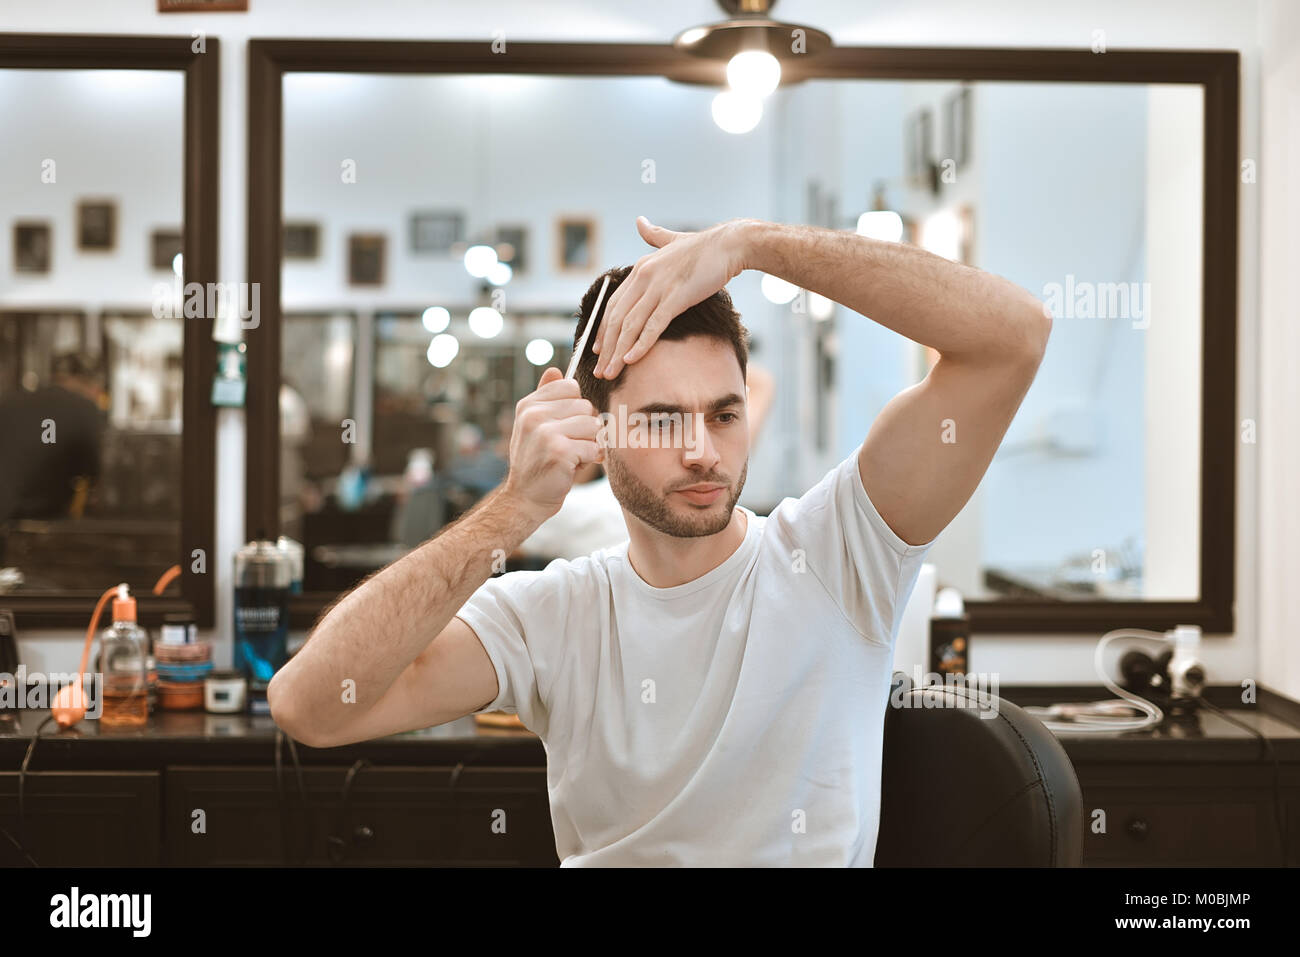 Working process in modern barbershop. Handsome hairdresser serving customer, styling hair for male client using - Stock Image